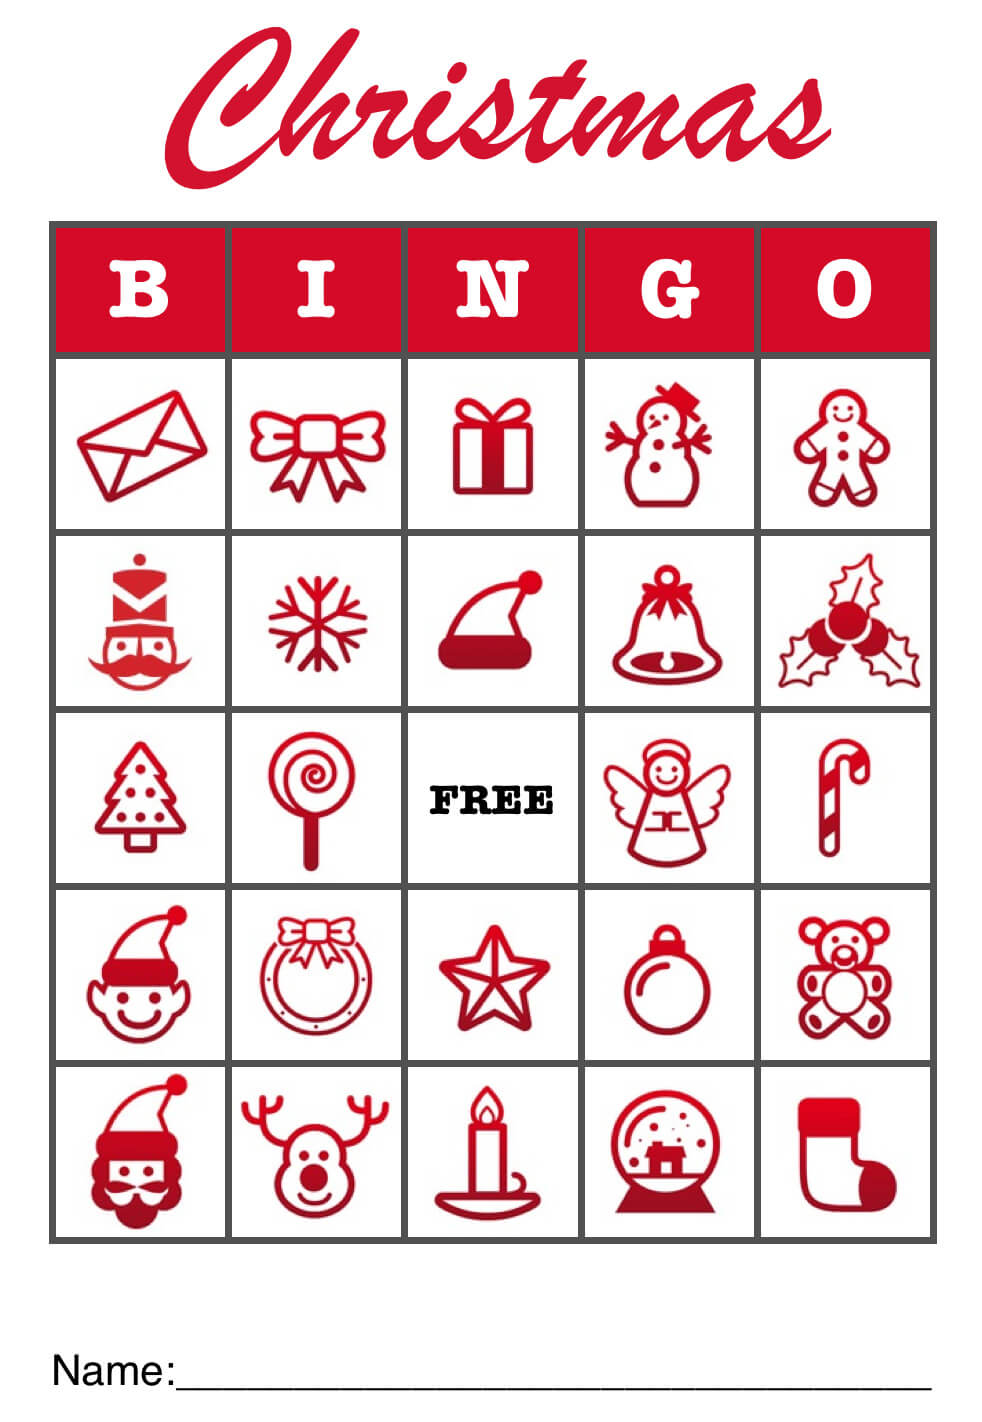 Christmas Bingo christmas bingo template pdf or pages - mactemplates ...